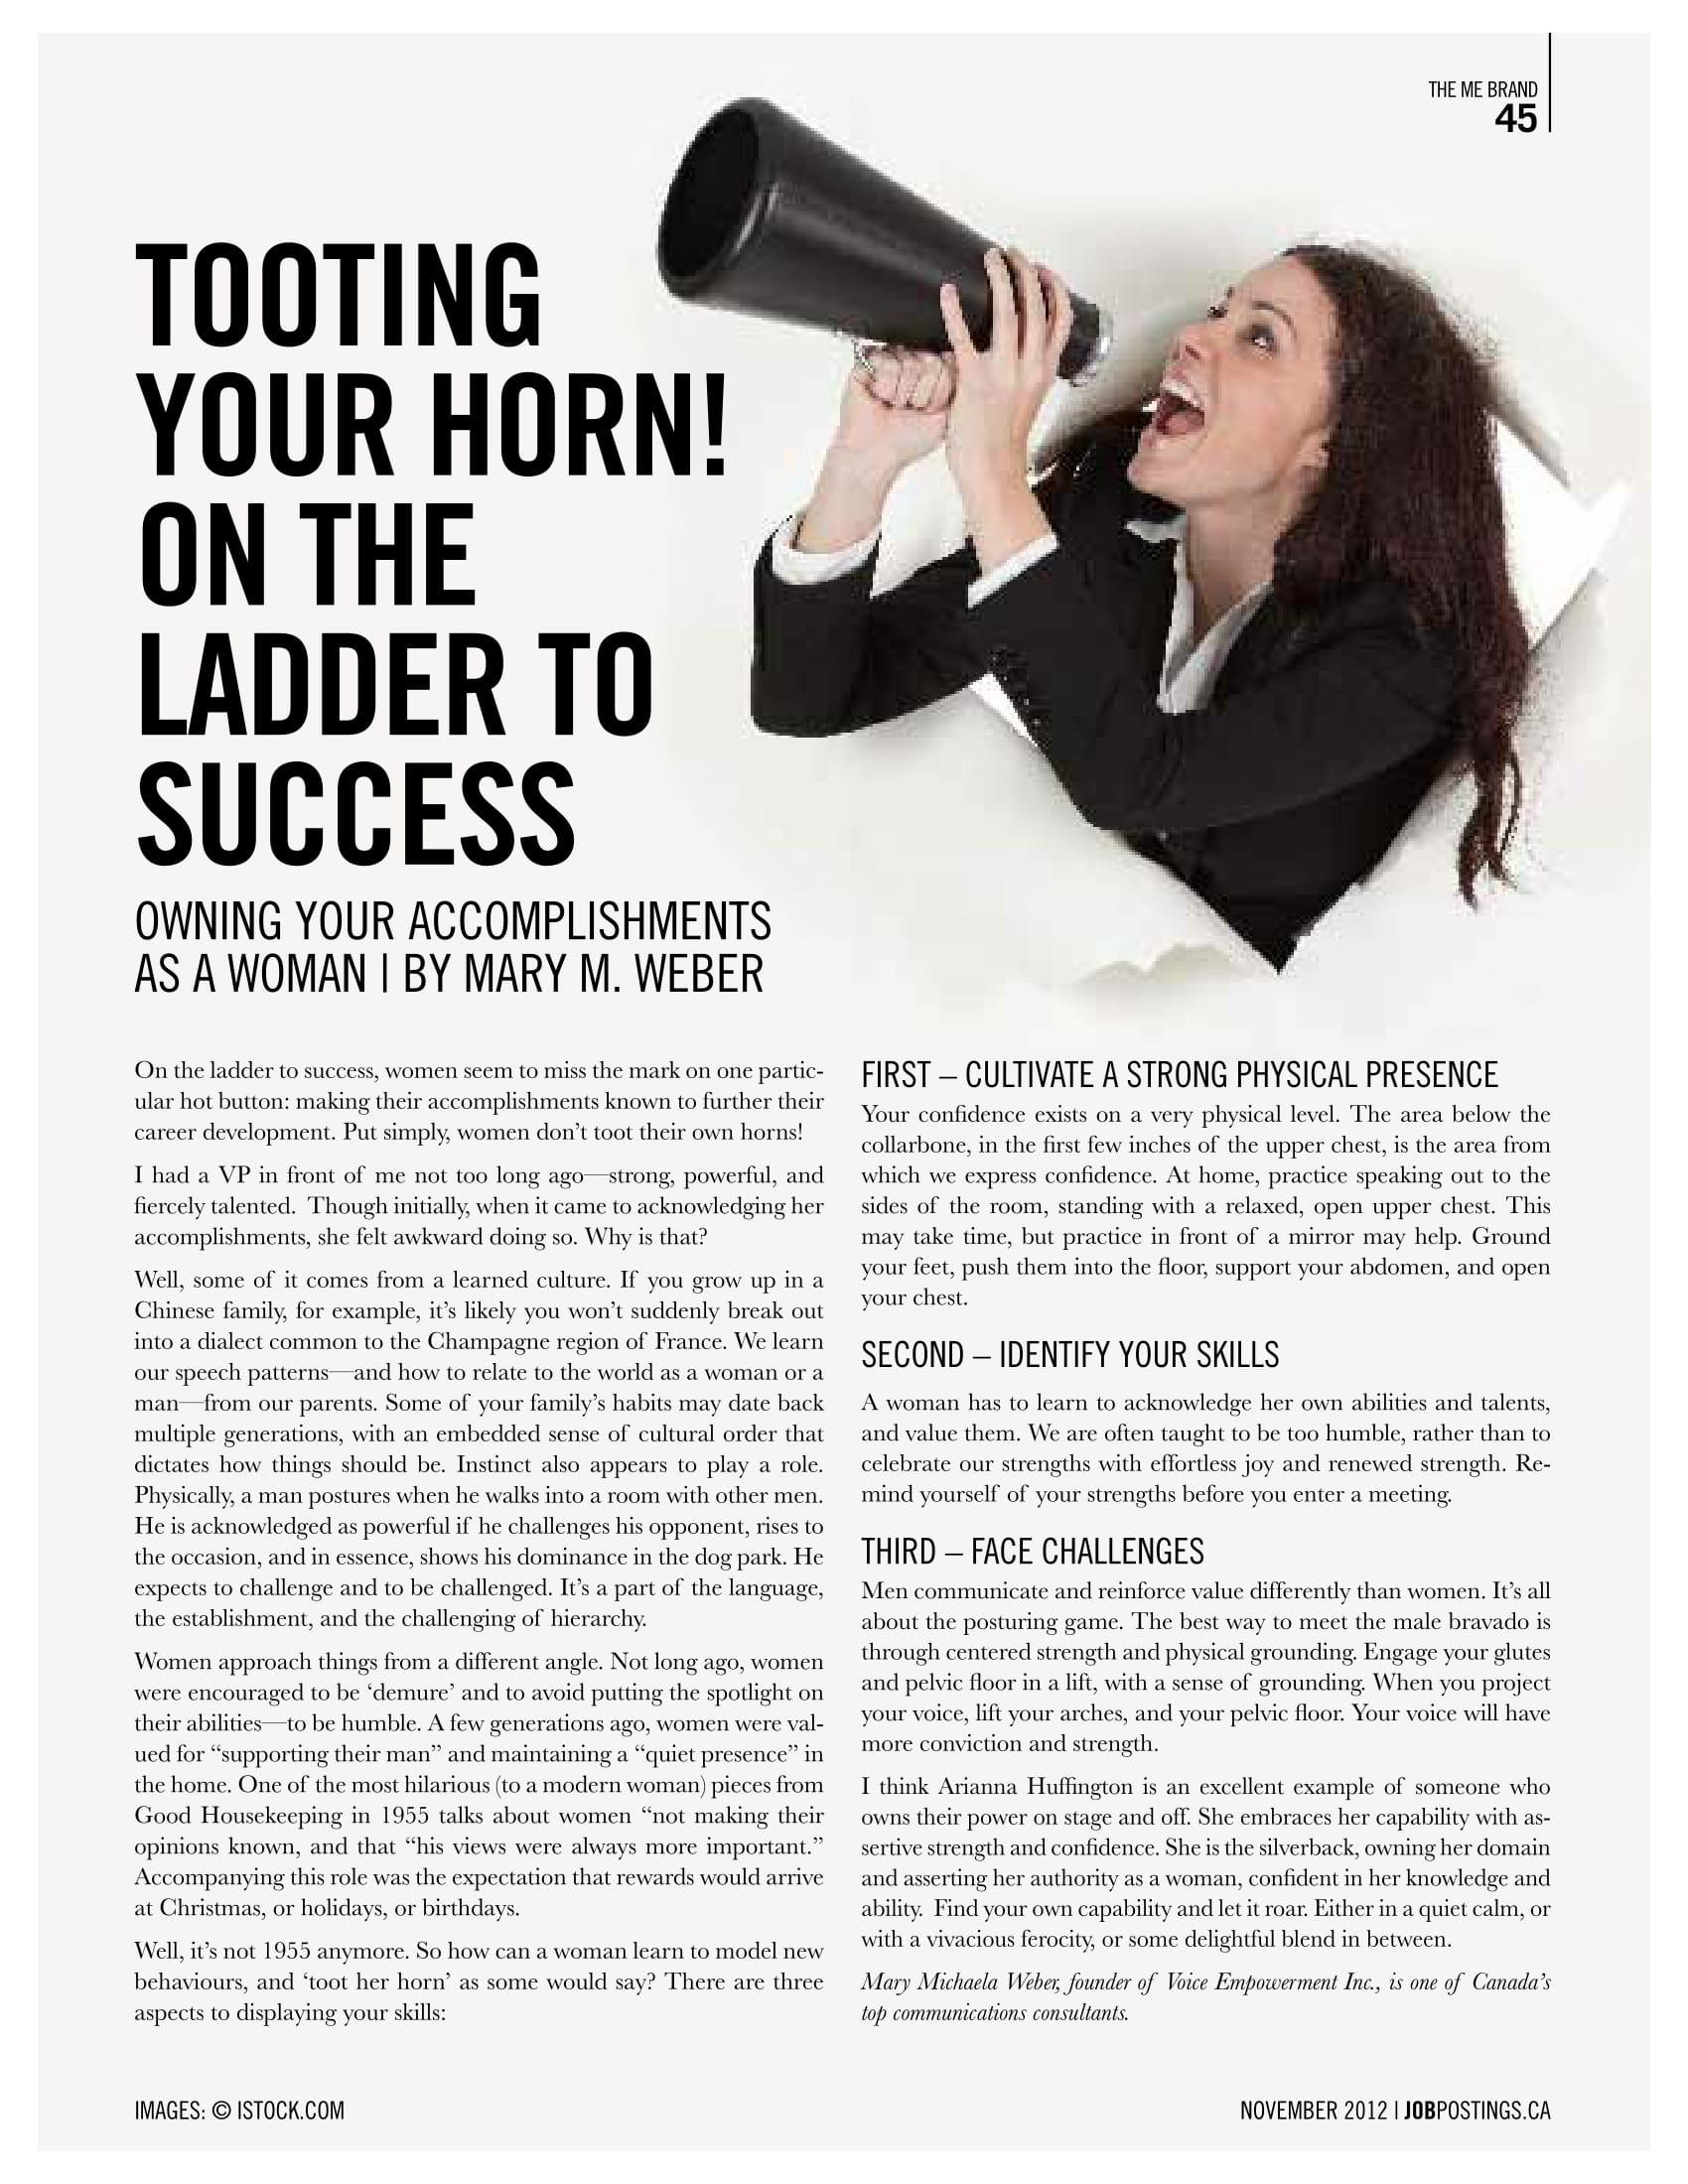 Tooting Your Horn! On The Ladder To Success:Owning Your Accomplishments as a Woman - November 2012The Me Brand -Page 45